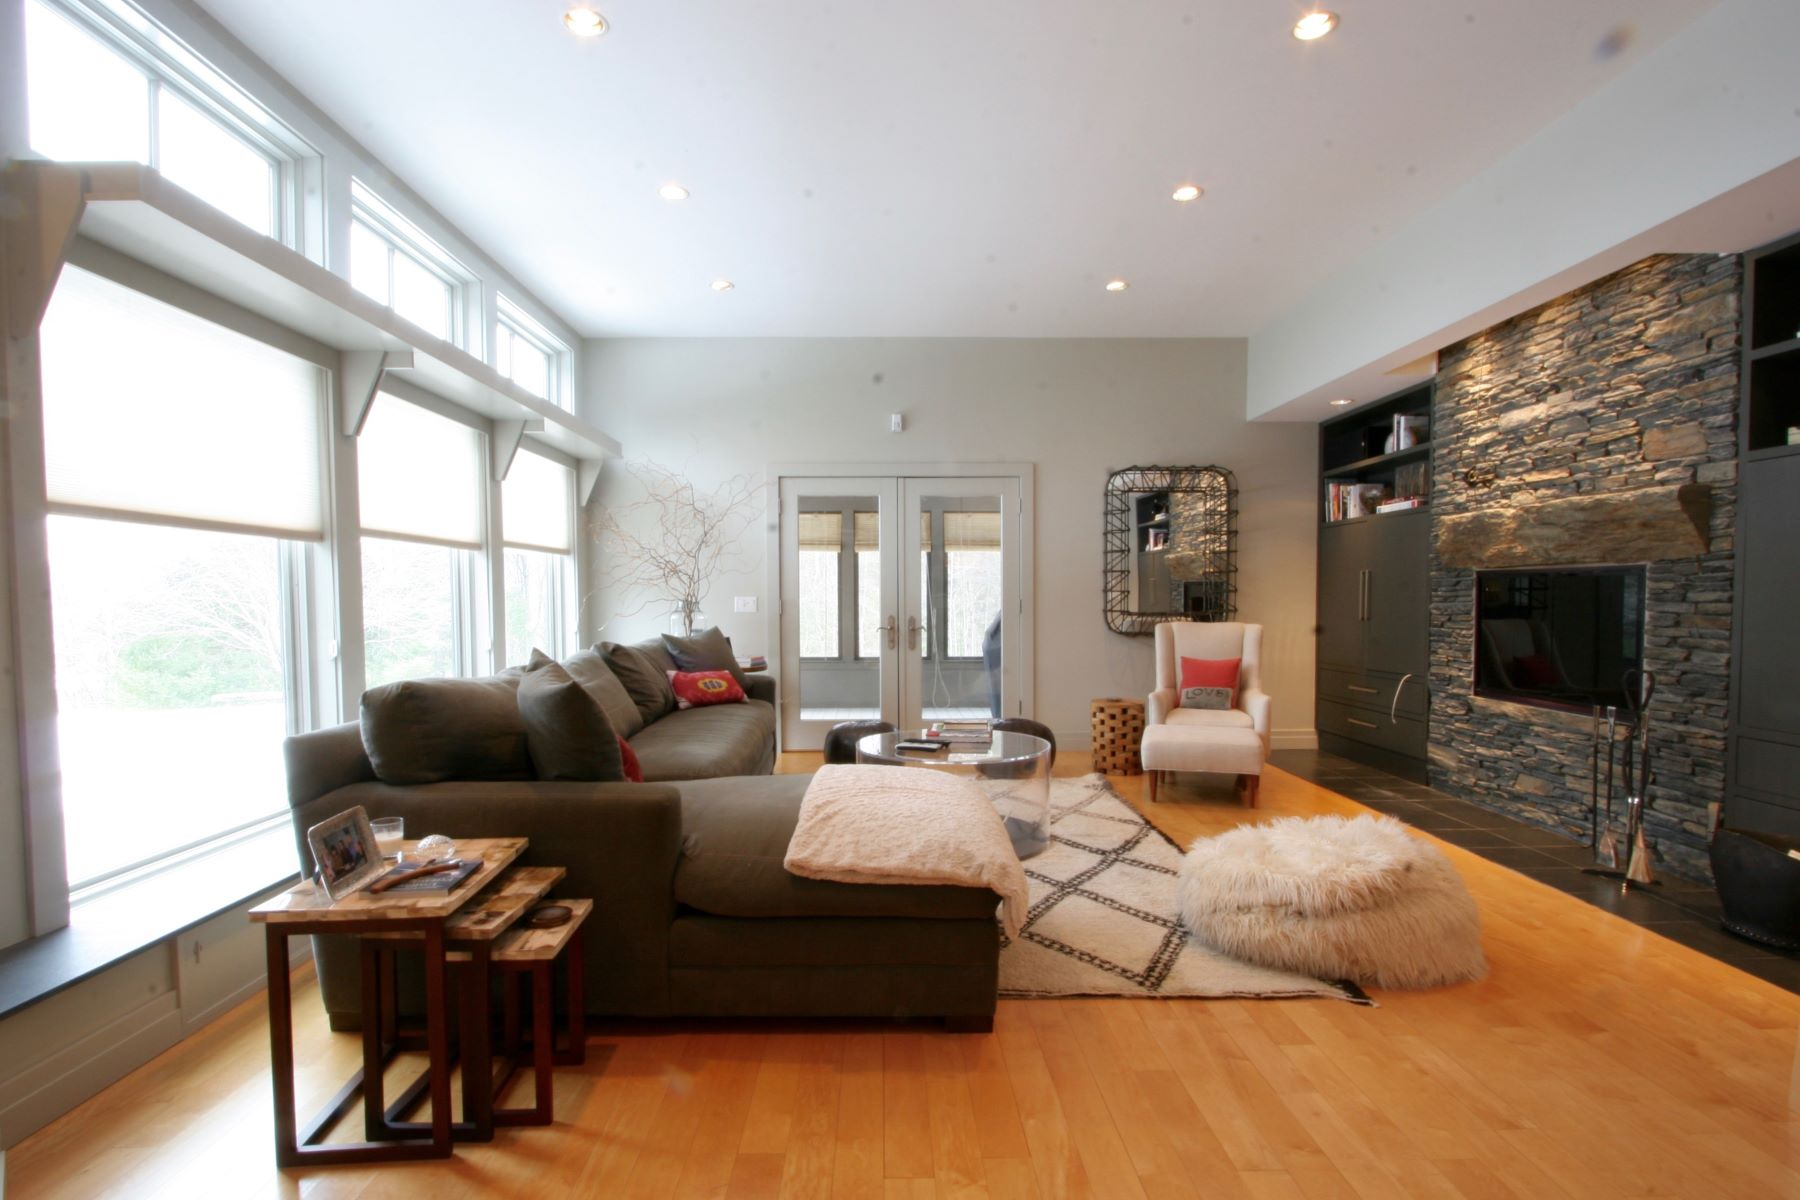 Single Family Home for Rent at Stunning Contemporary with Big Views 54 Crooked Hill Rd Alford, Massachusetts, 01230 United States